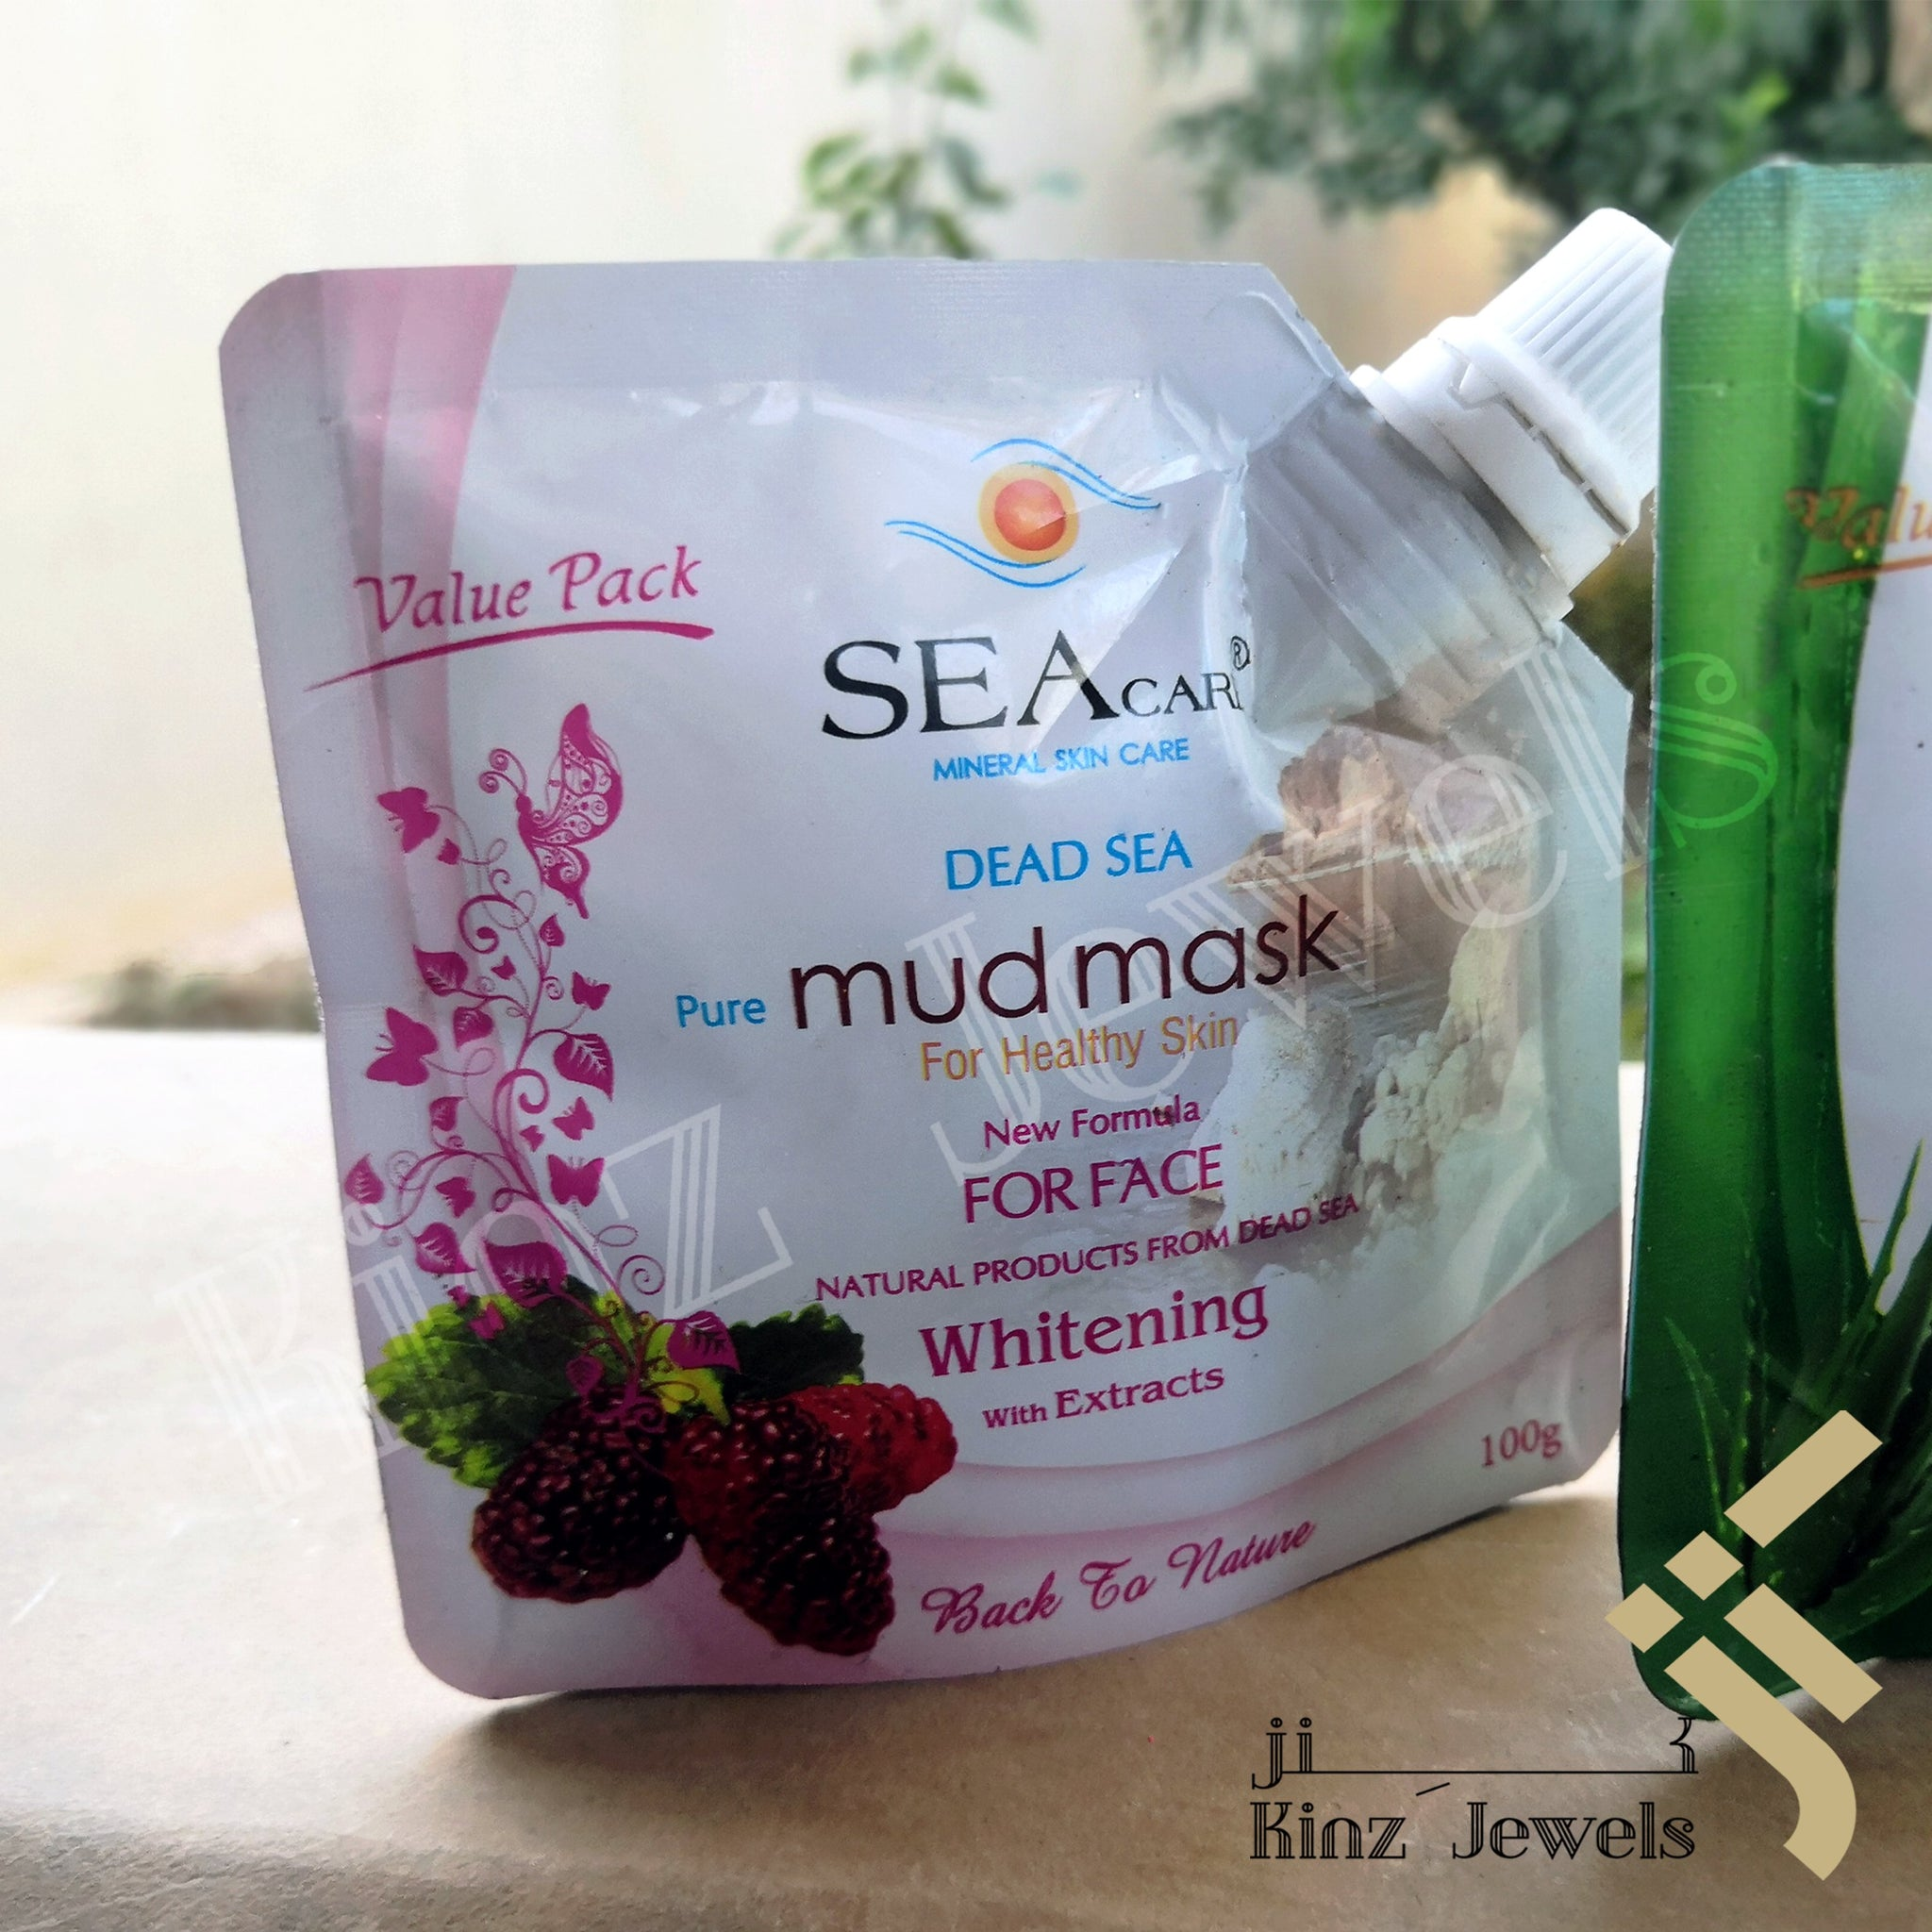 kinzjewels - Dead Sea Pure Mulberry Mud Mask For Healthy Skin Natural Whitening Face